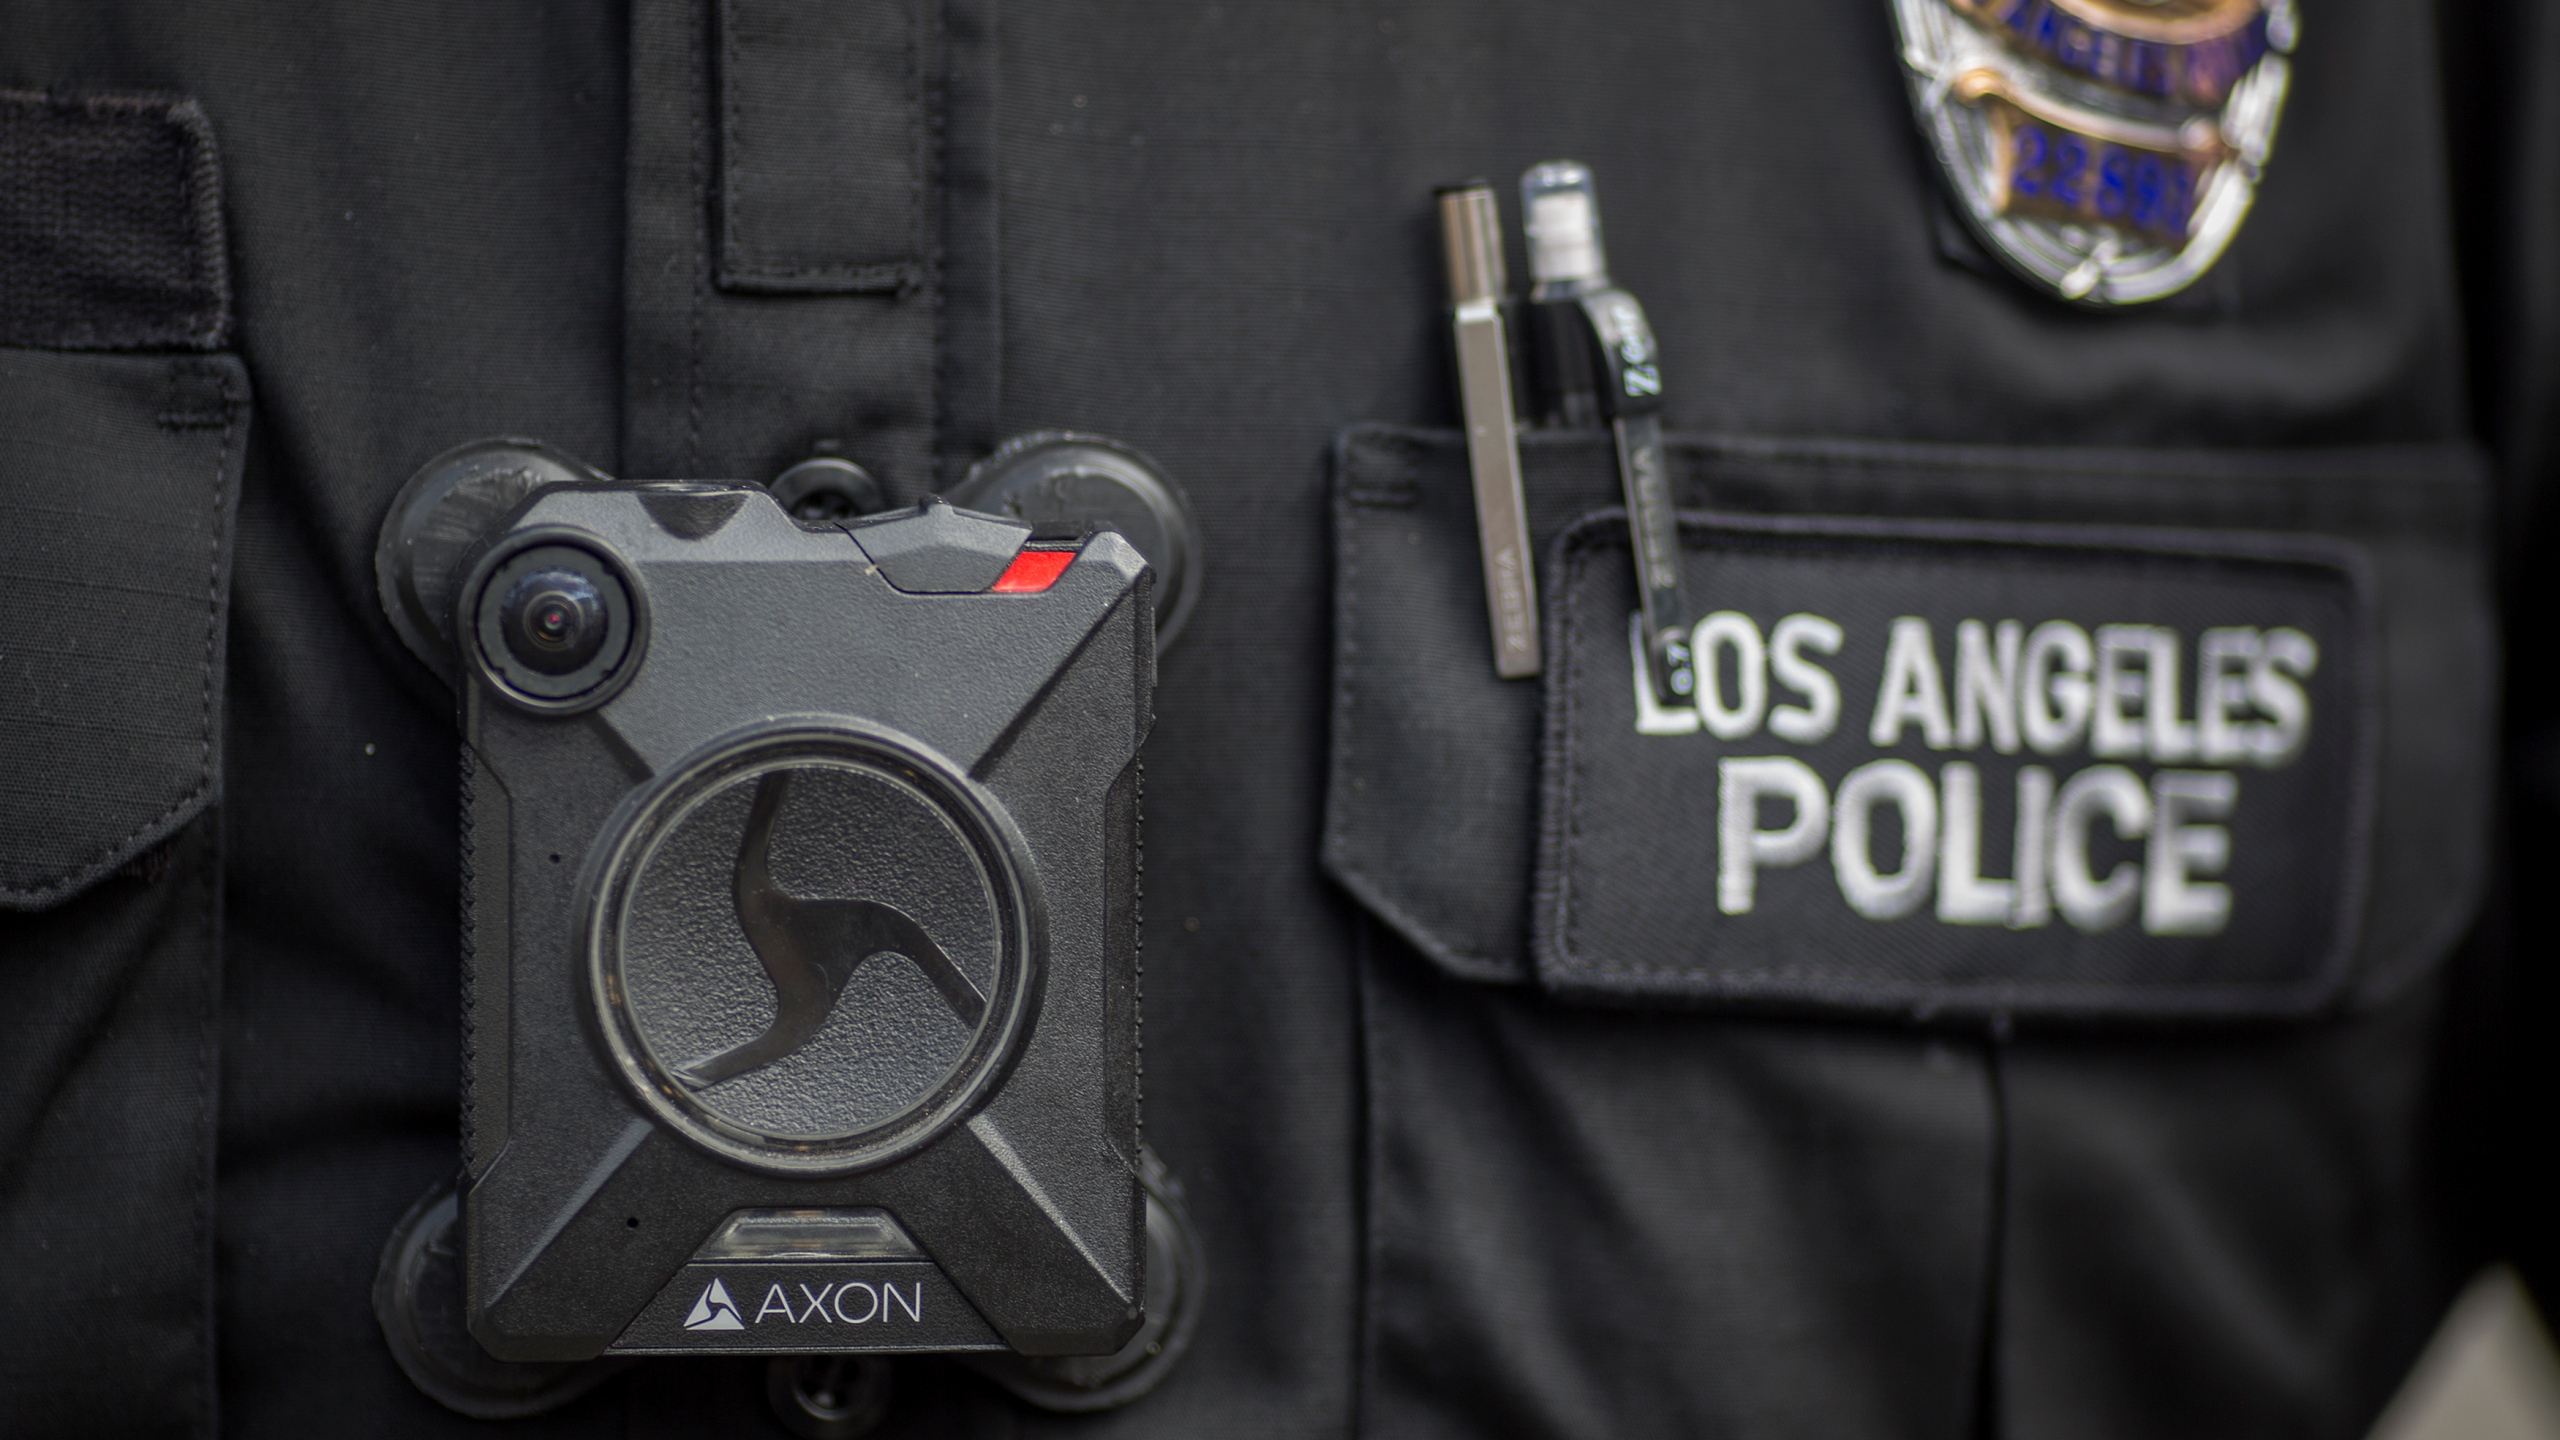 A Los Angeles police officer's body camera is seen on Feb. 18, 2017, in Los Angeles. (Credit: David McNew/Getty Images)